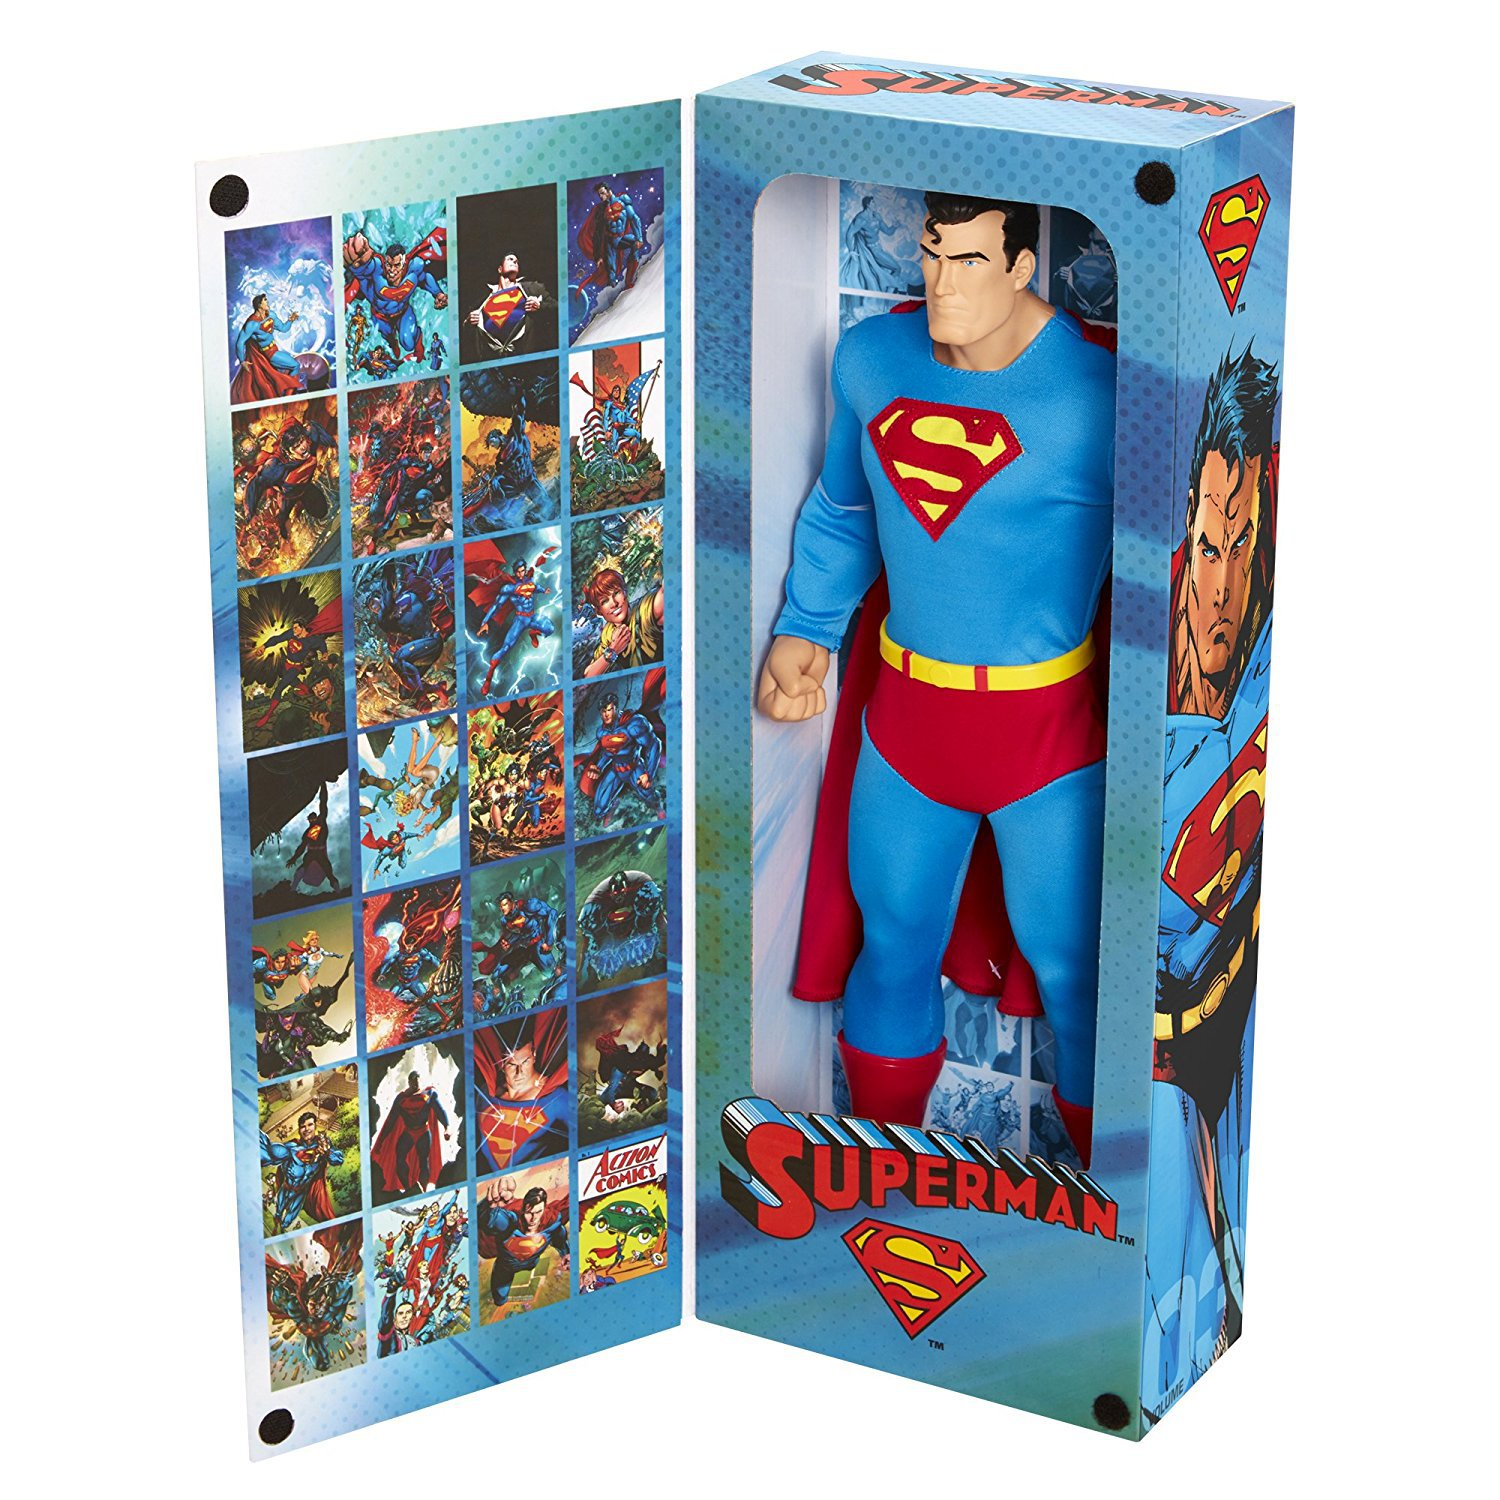 JAKKS-BIG-FIGS-Sup2.jpg